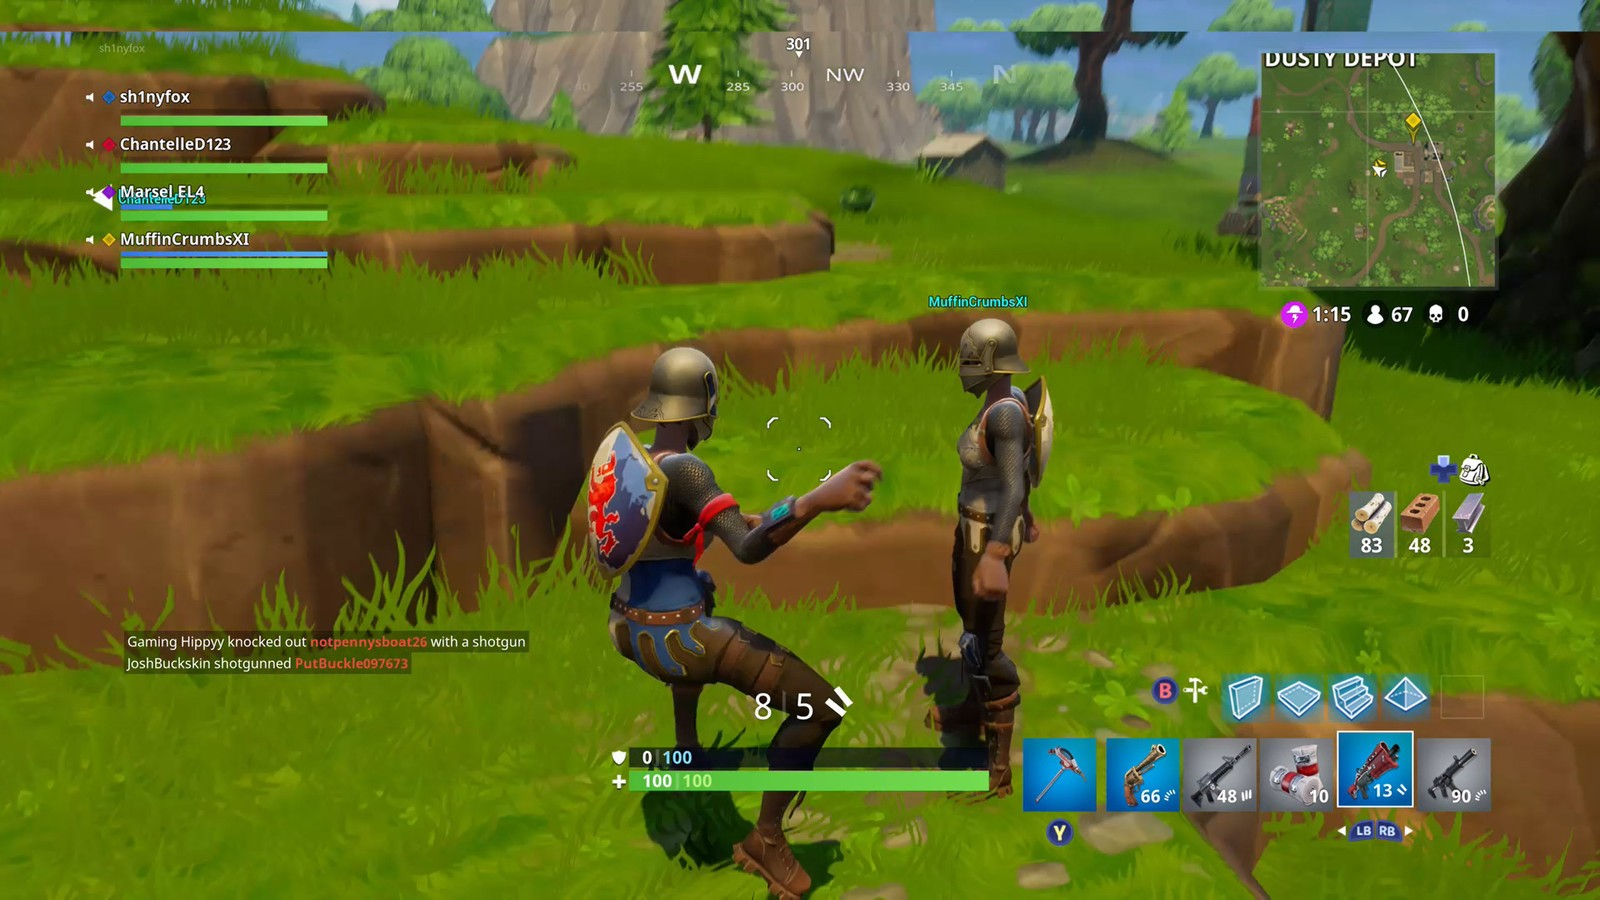 How to play fortnite on an iphone 6 plus